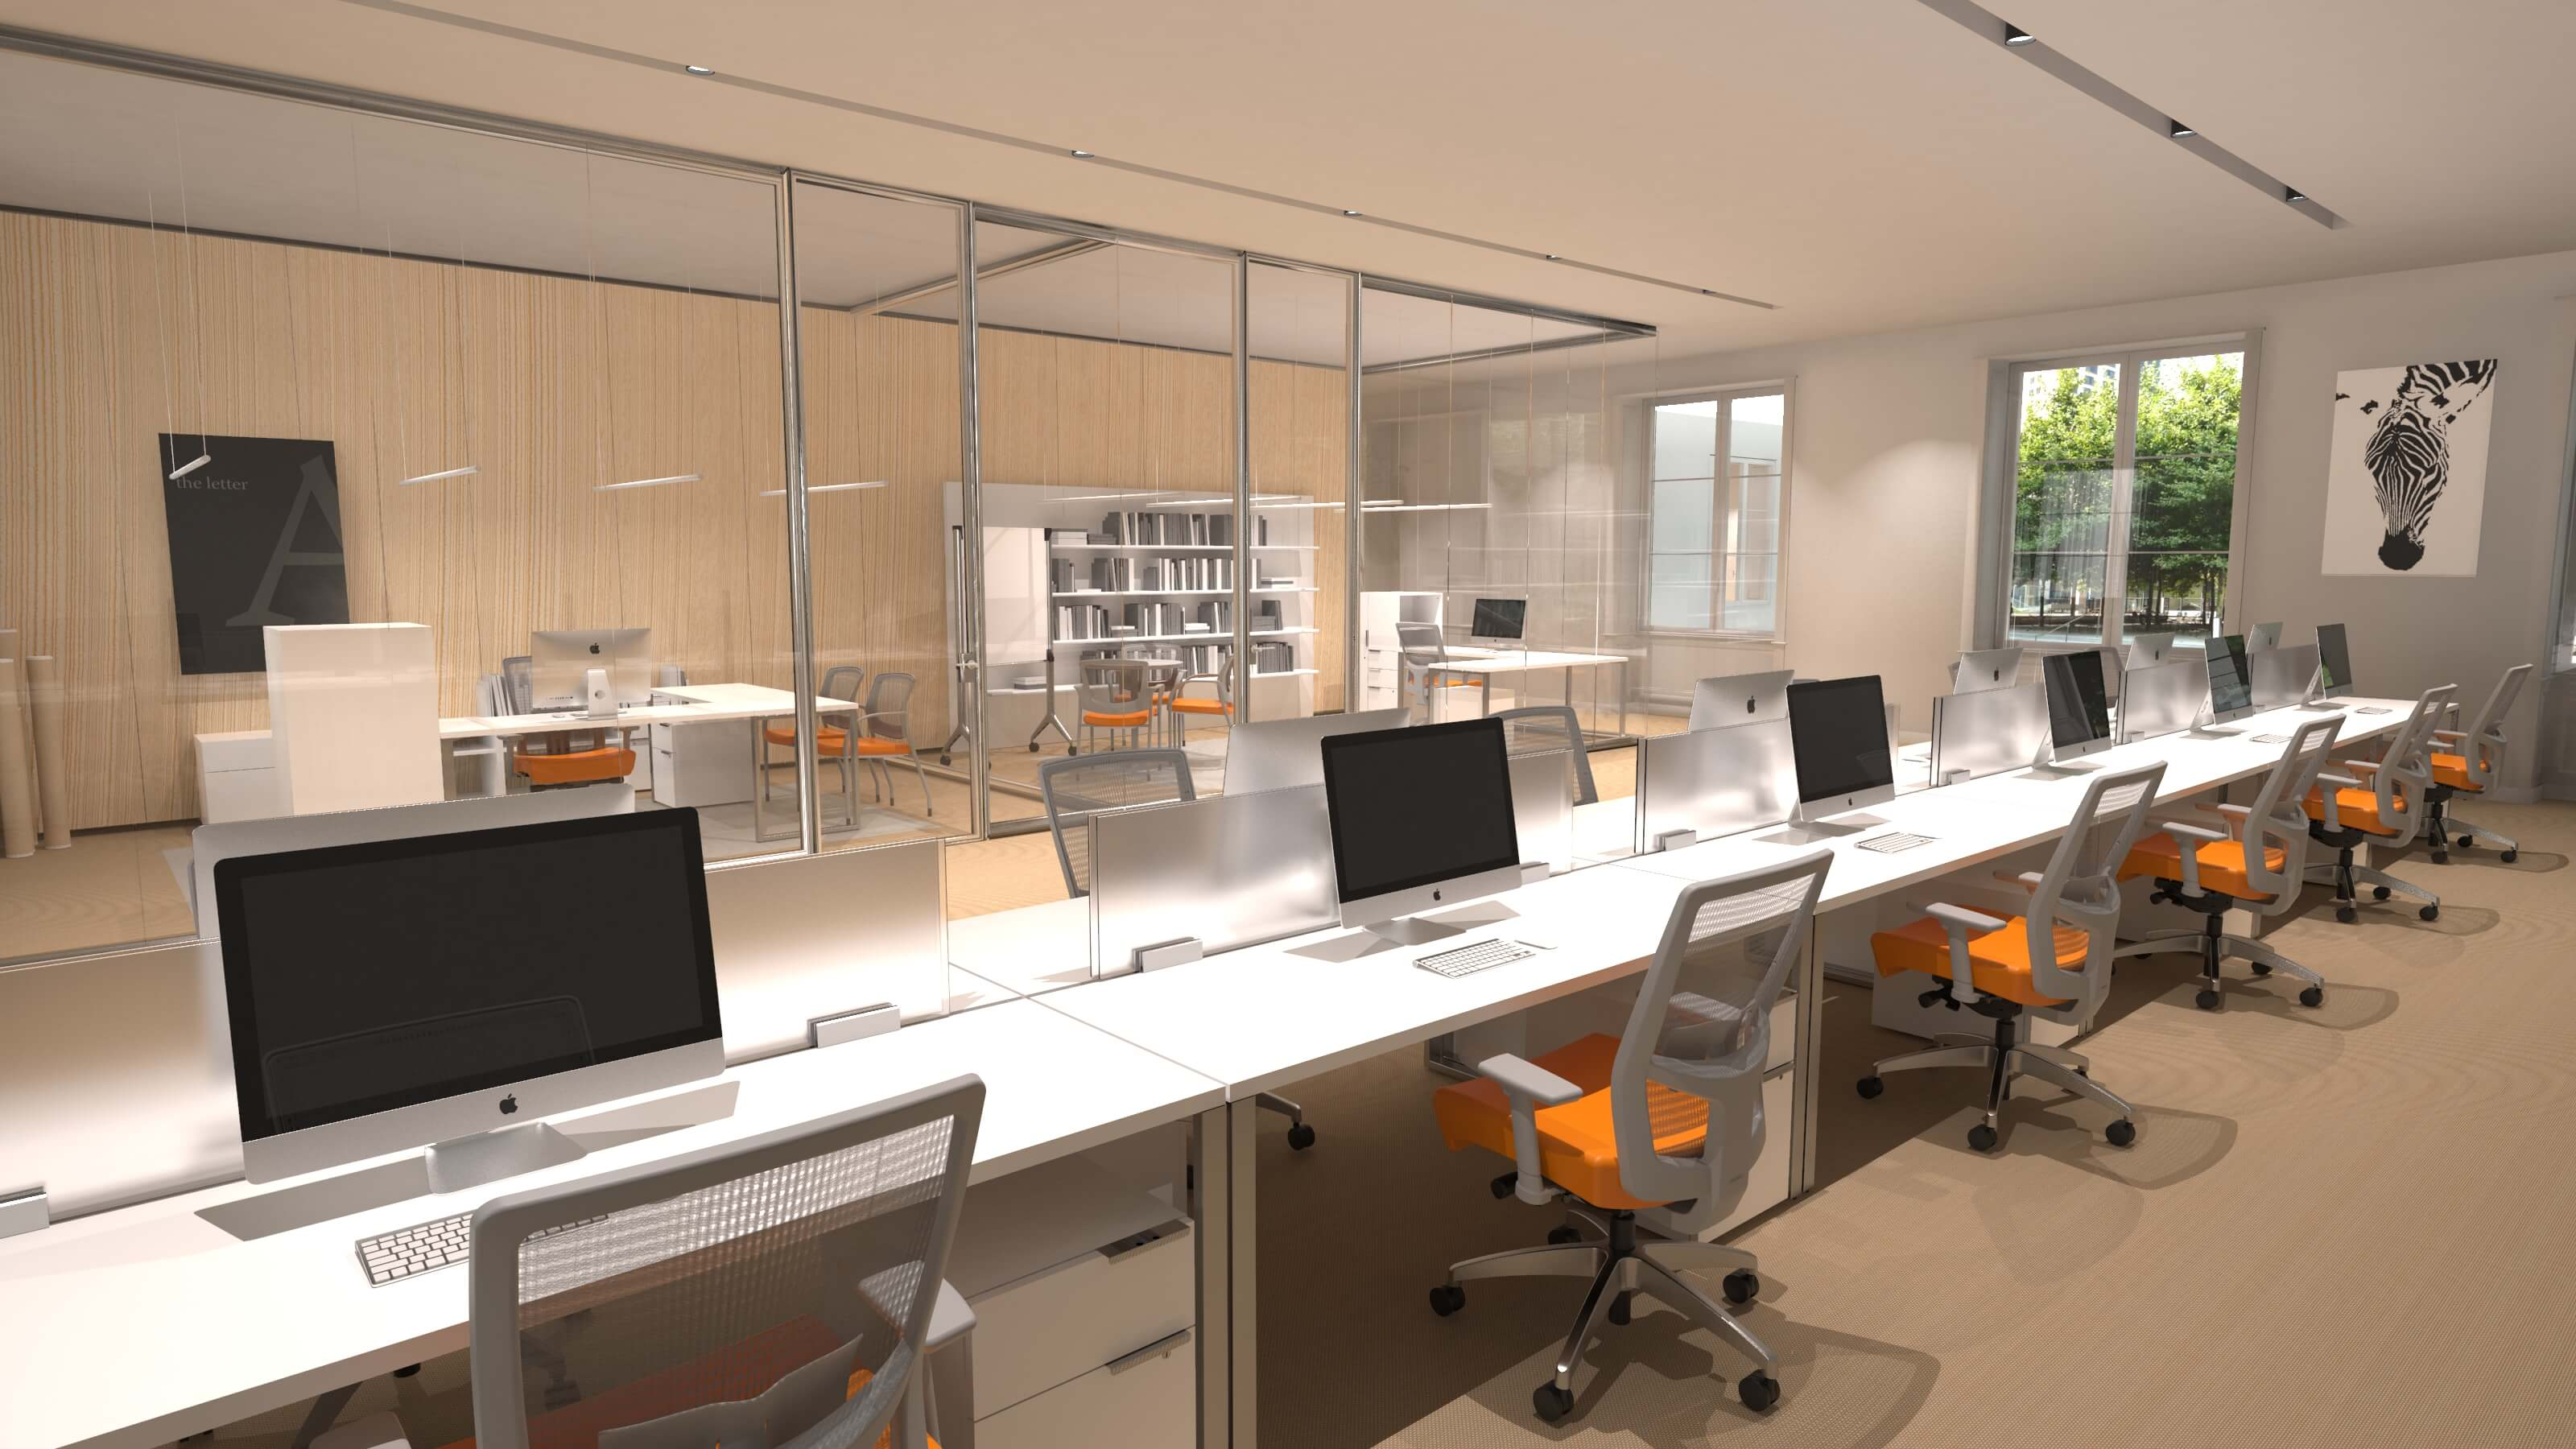 3D CAD Render by Sprout Studios of an office